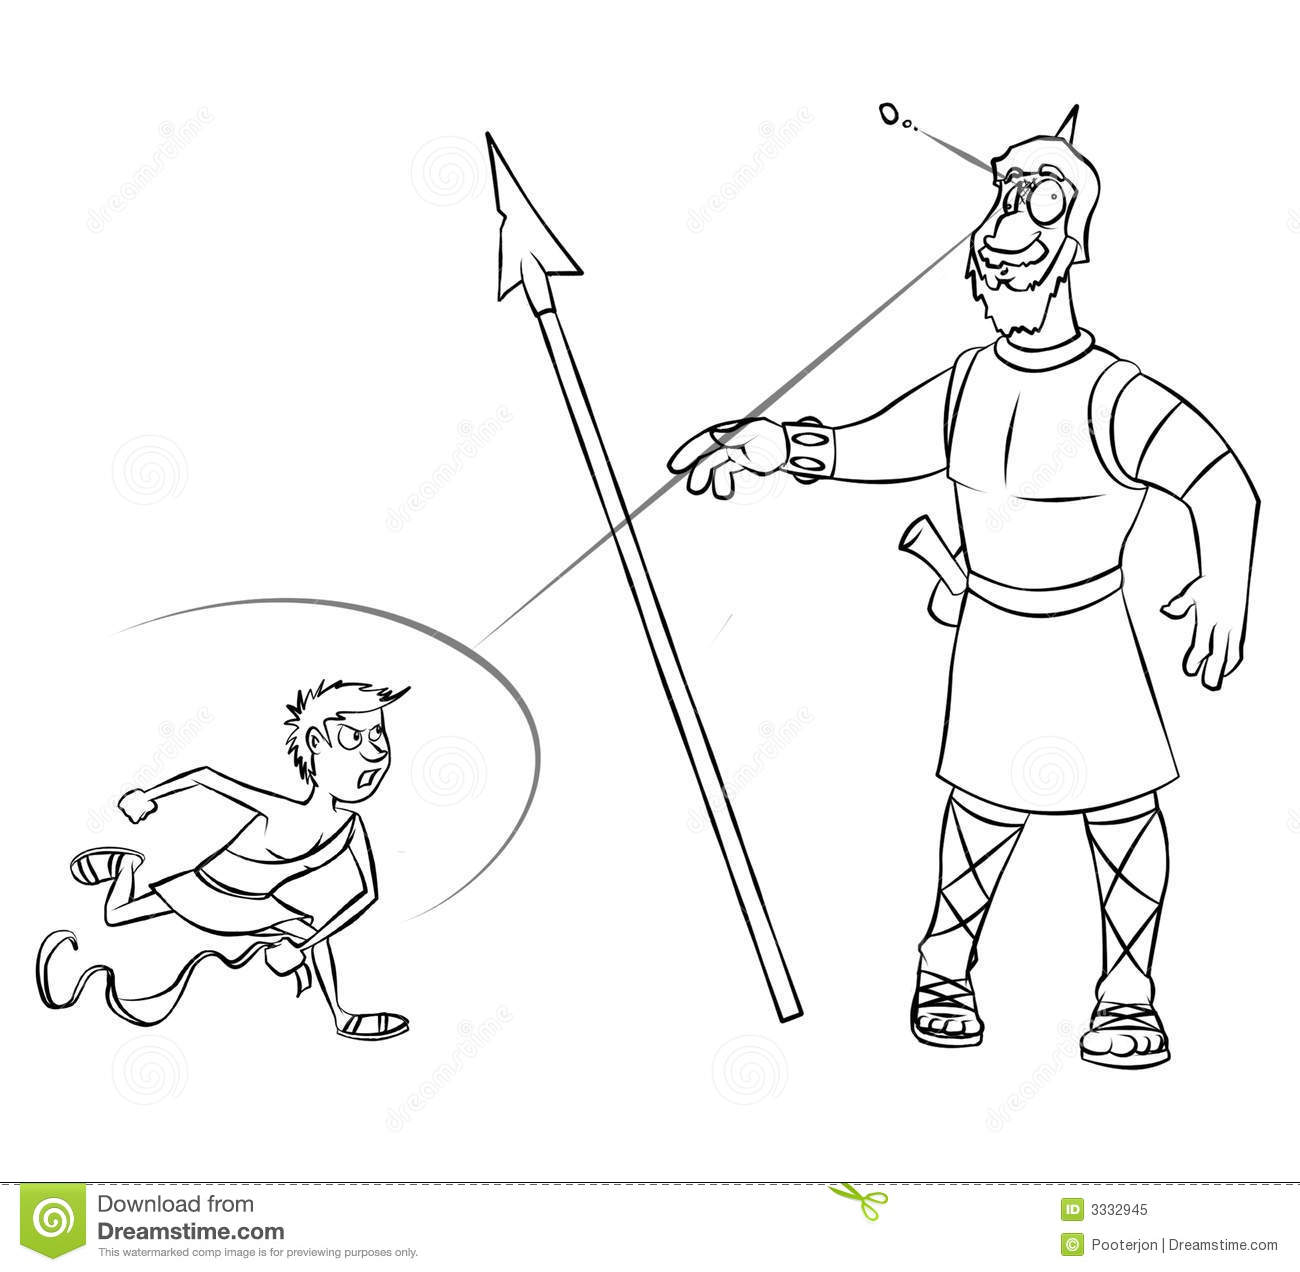 david and goliath line art royalty free stock photo image 3332945